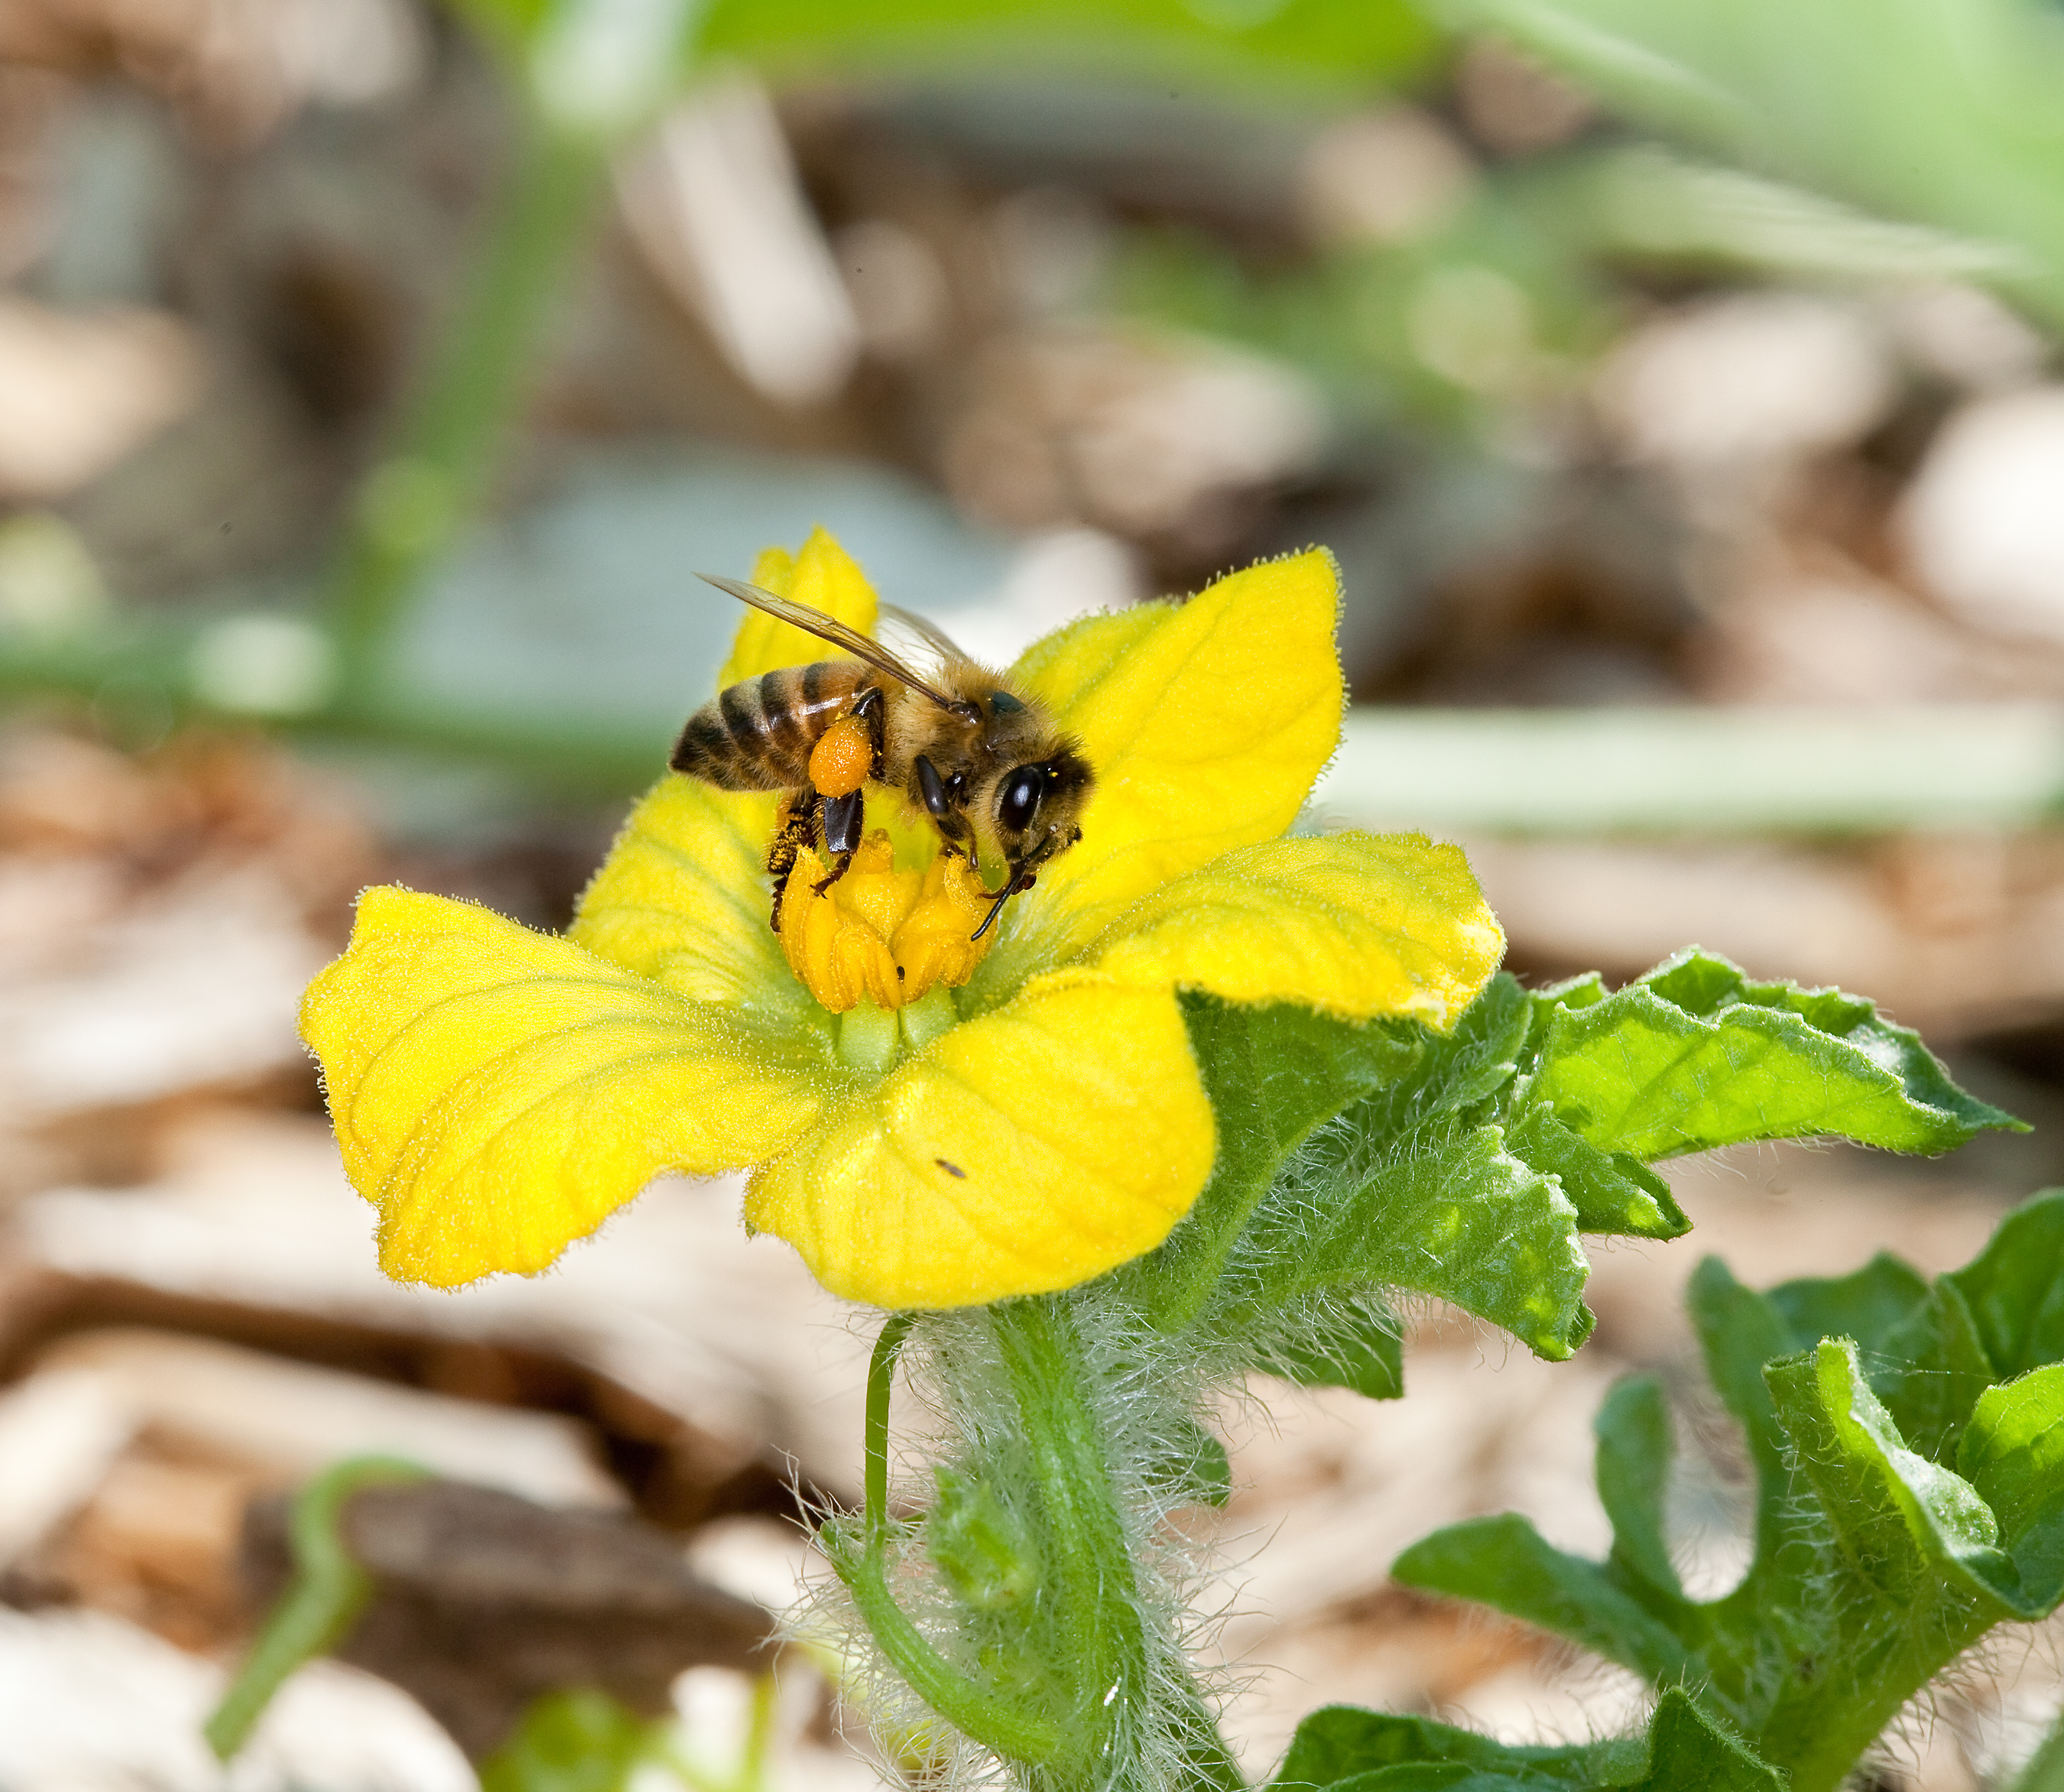 announcing new steps to promote pollinator health whitehouse gov